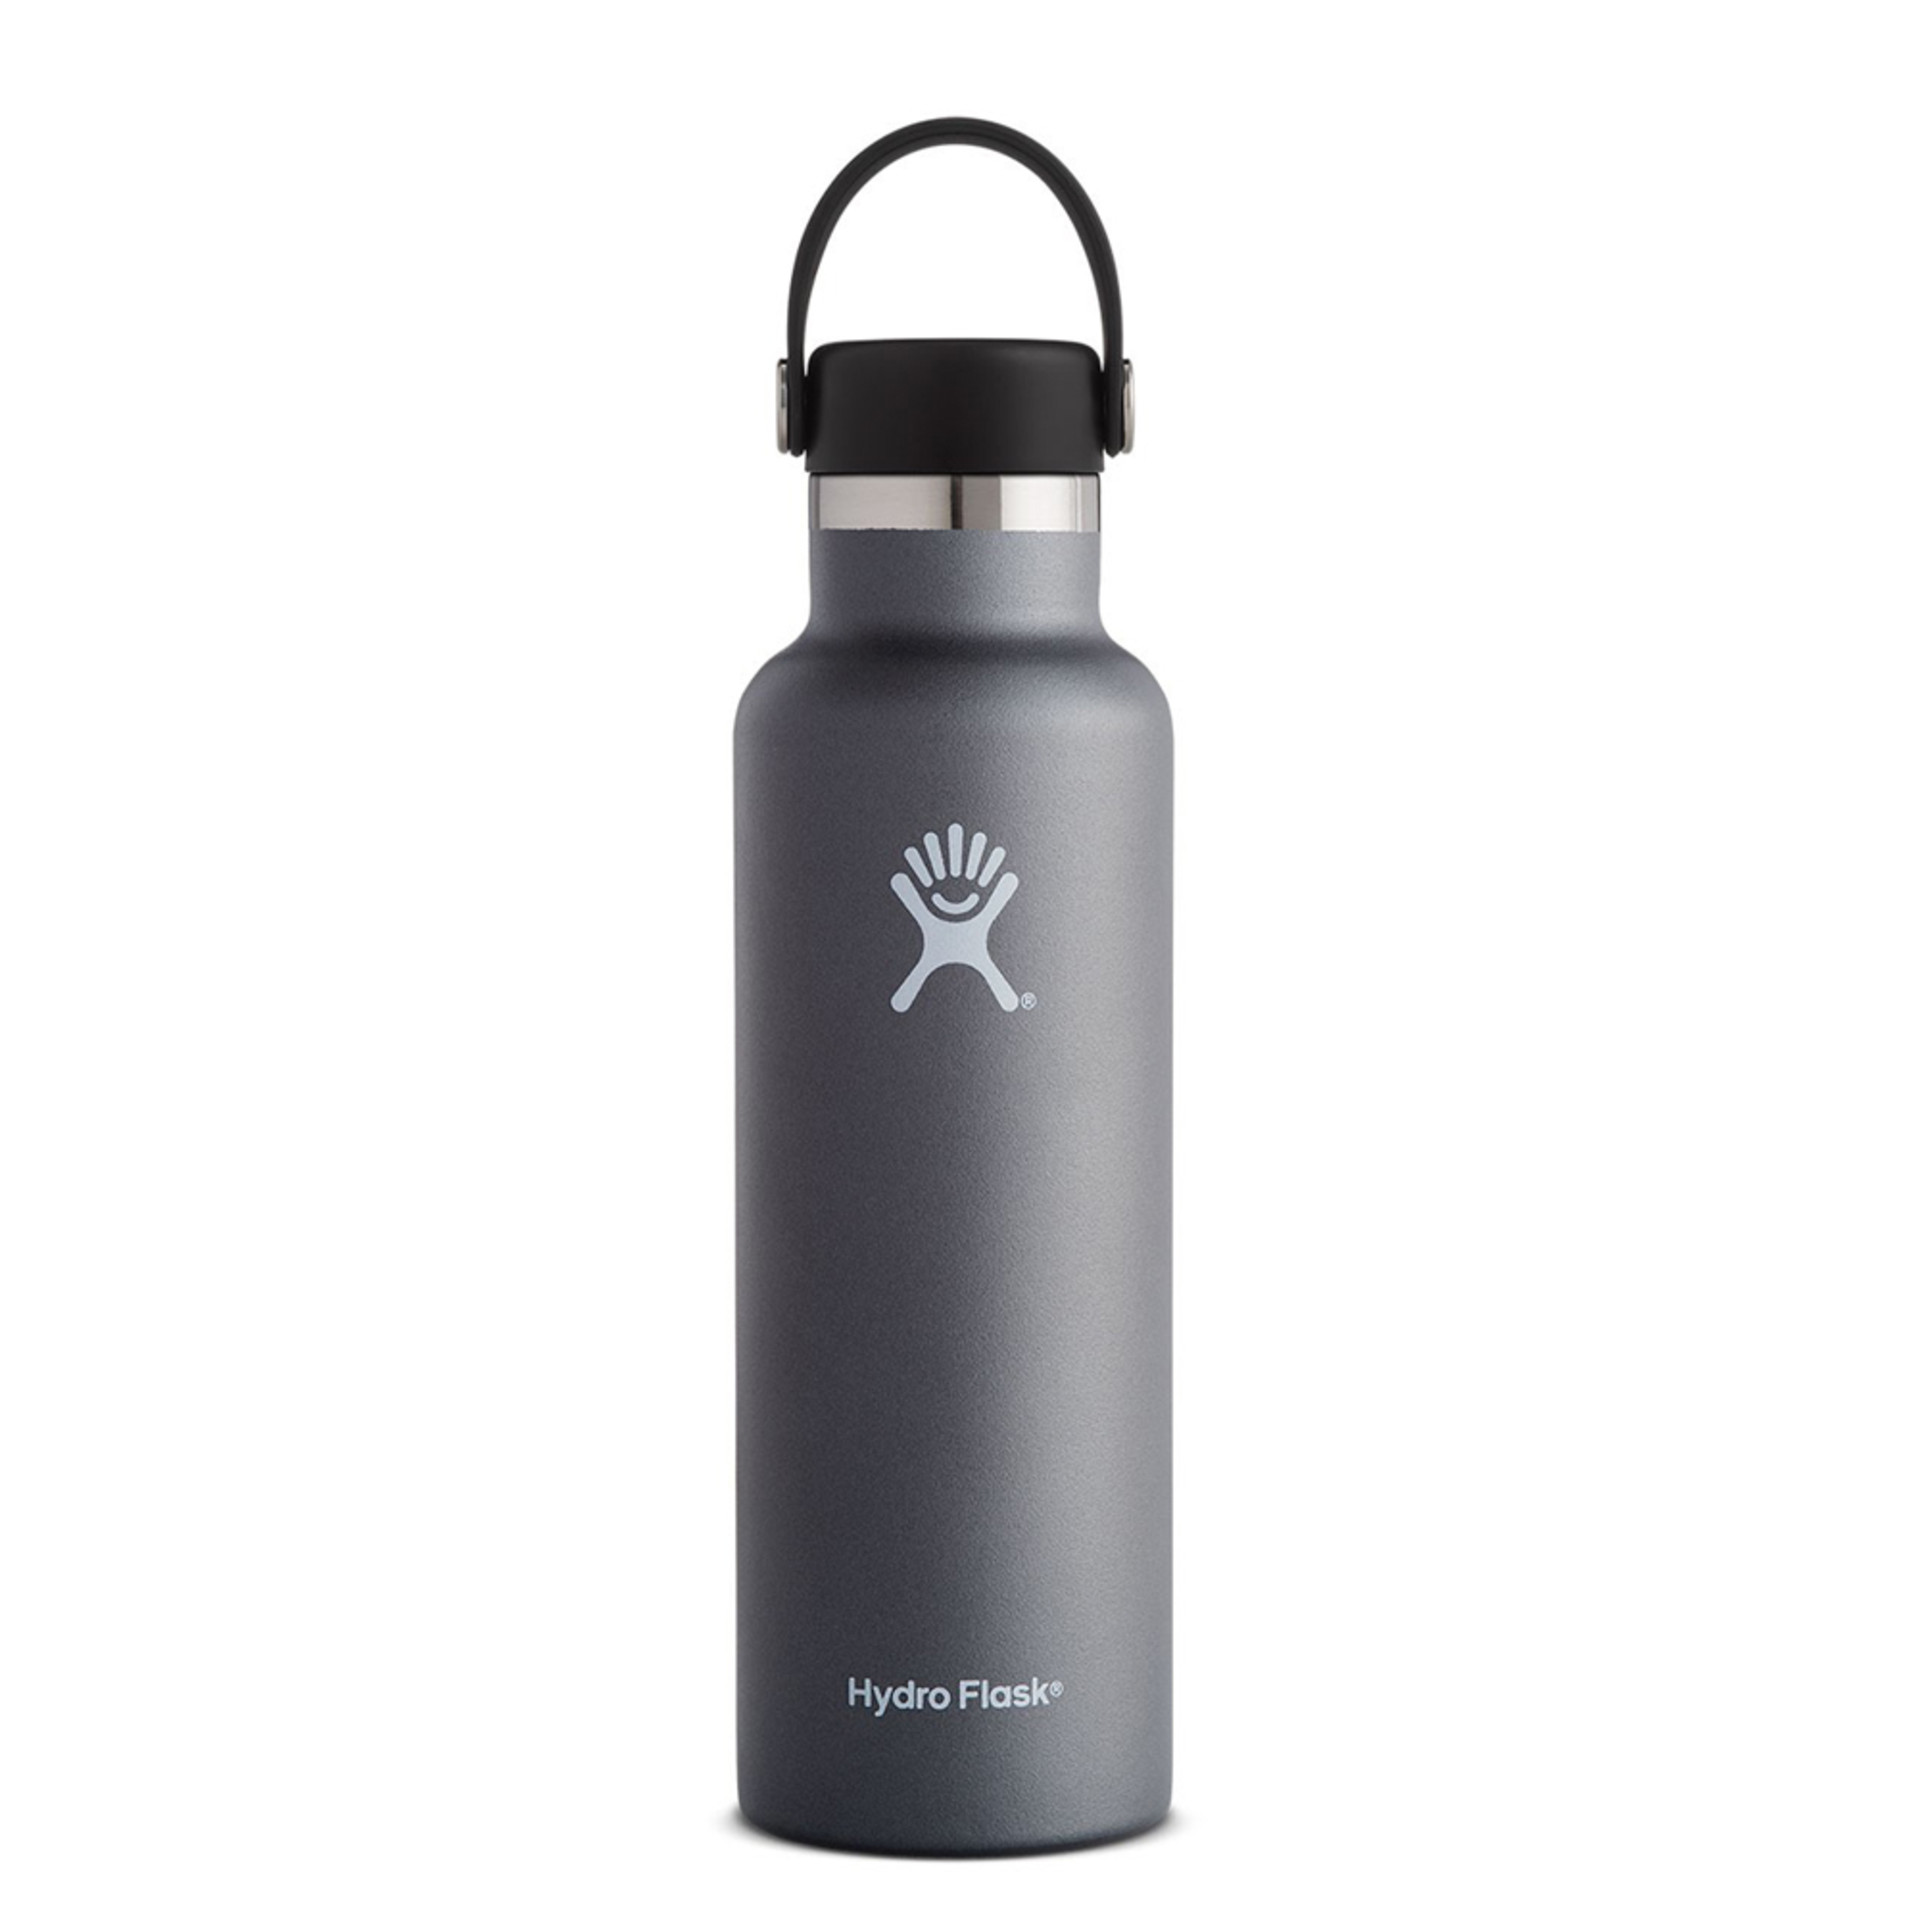 Hydro Flask Water Bottle Granite